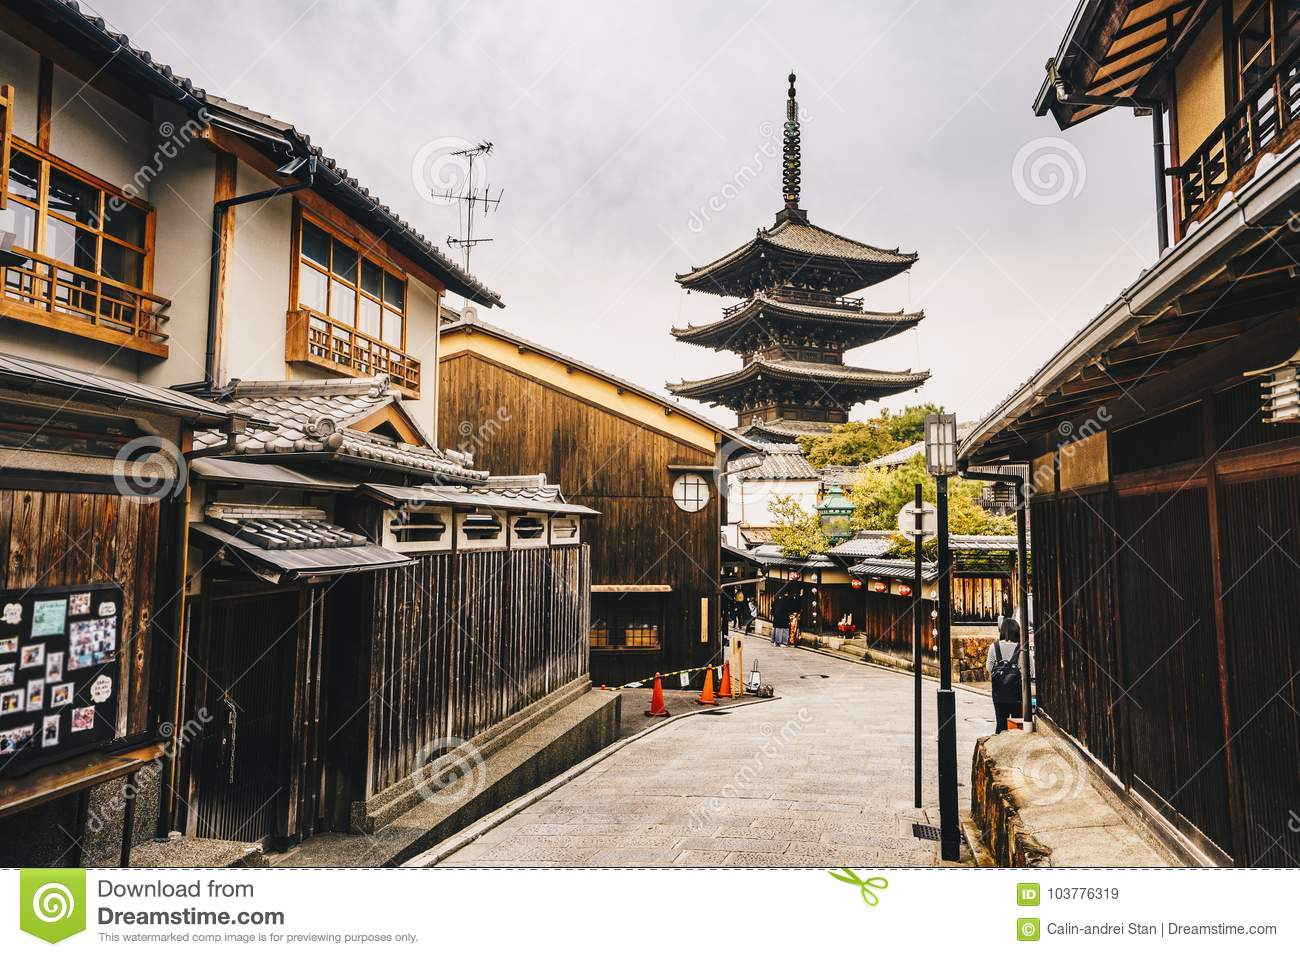 Yasaka Pagoda and Sannen Zaka Street in Kyoto old city in Higas